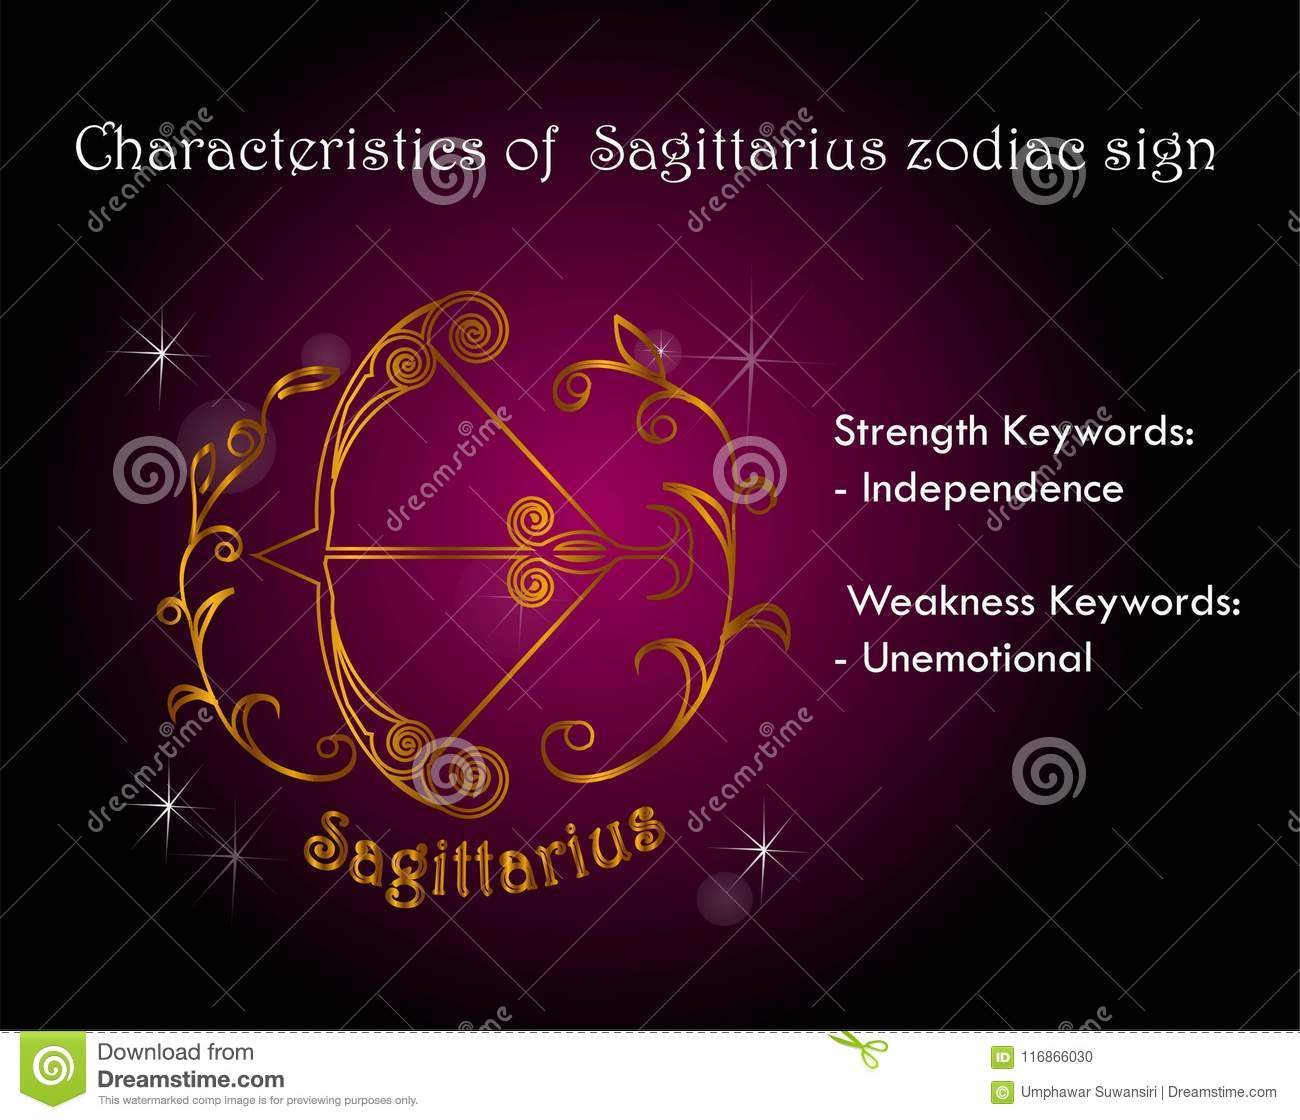 sagittarius astrological sign characteristics